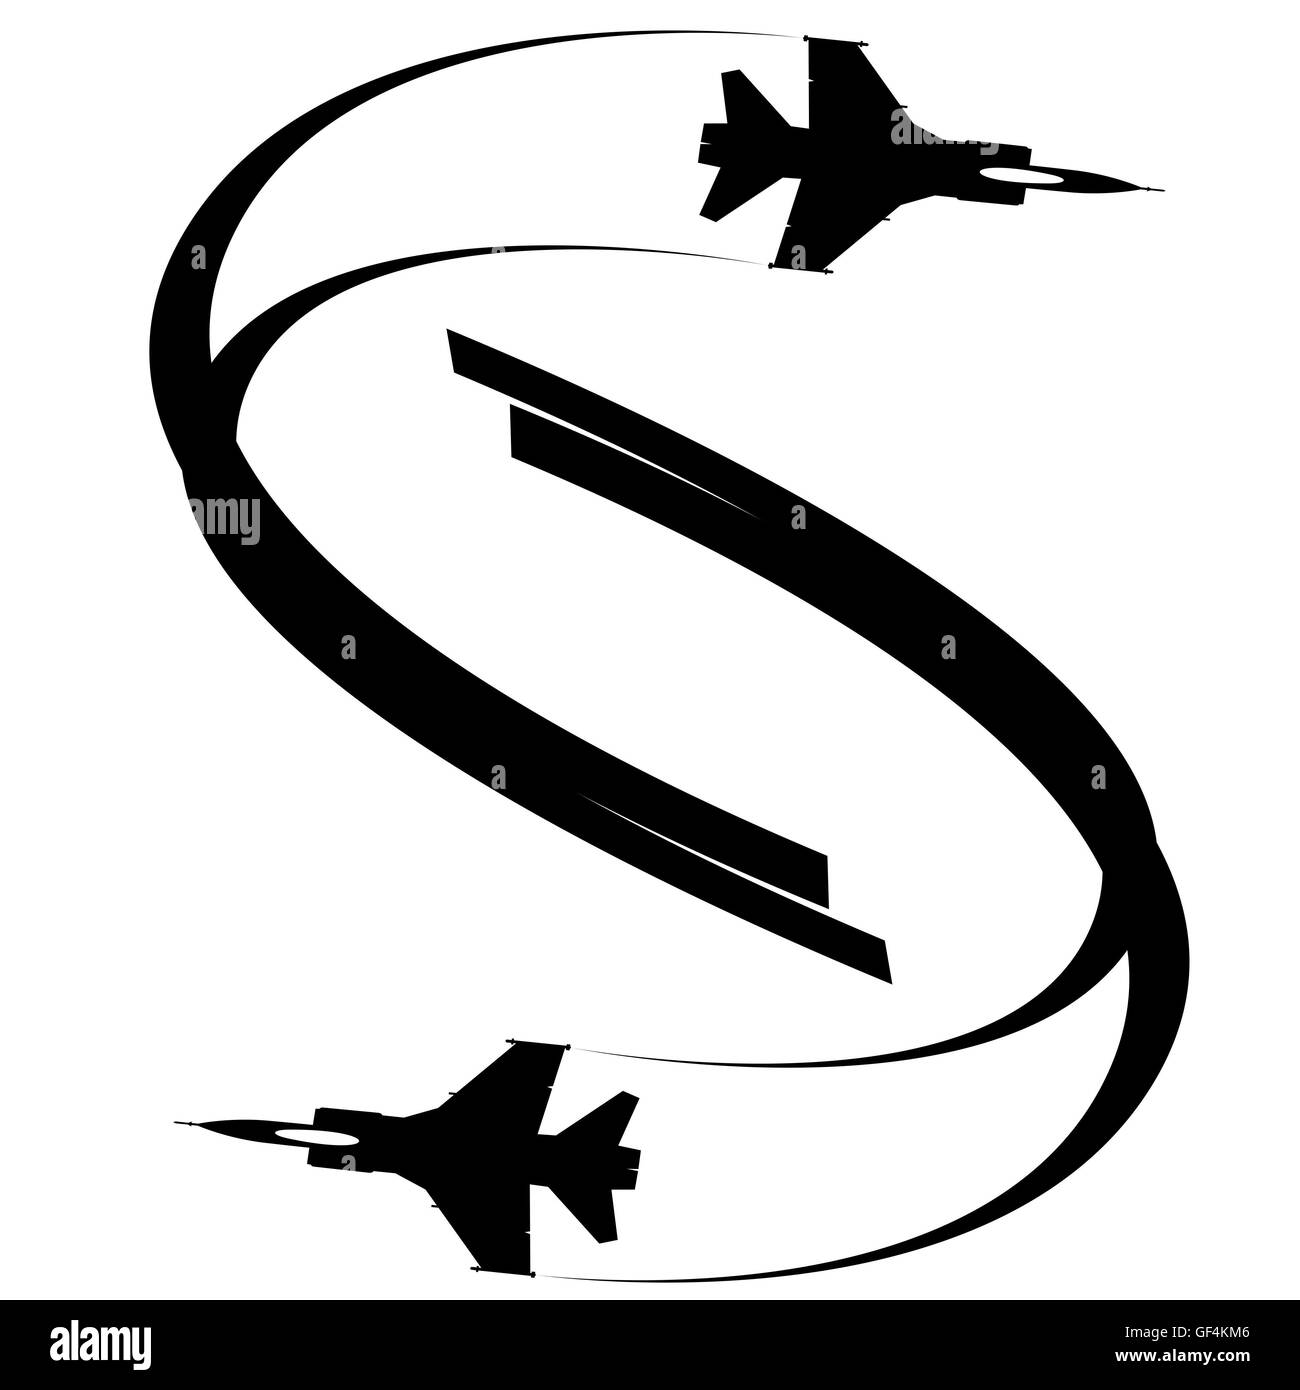 The contour of the two flying military aircraft. The illustration on white background. - Stock Image